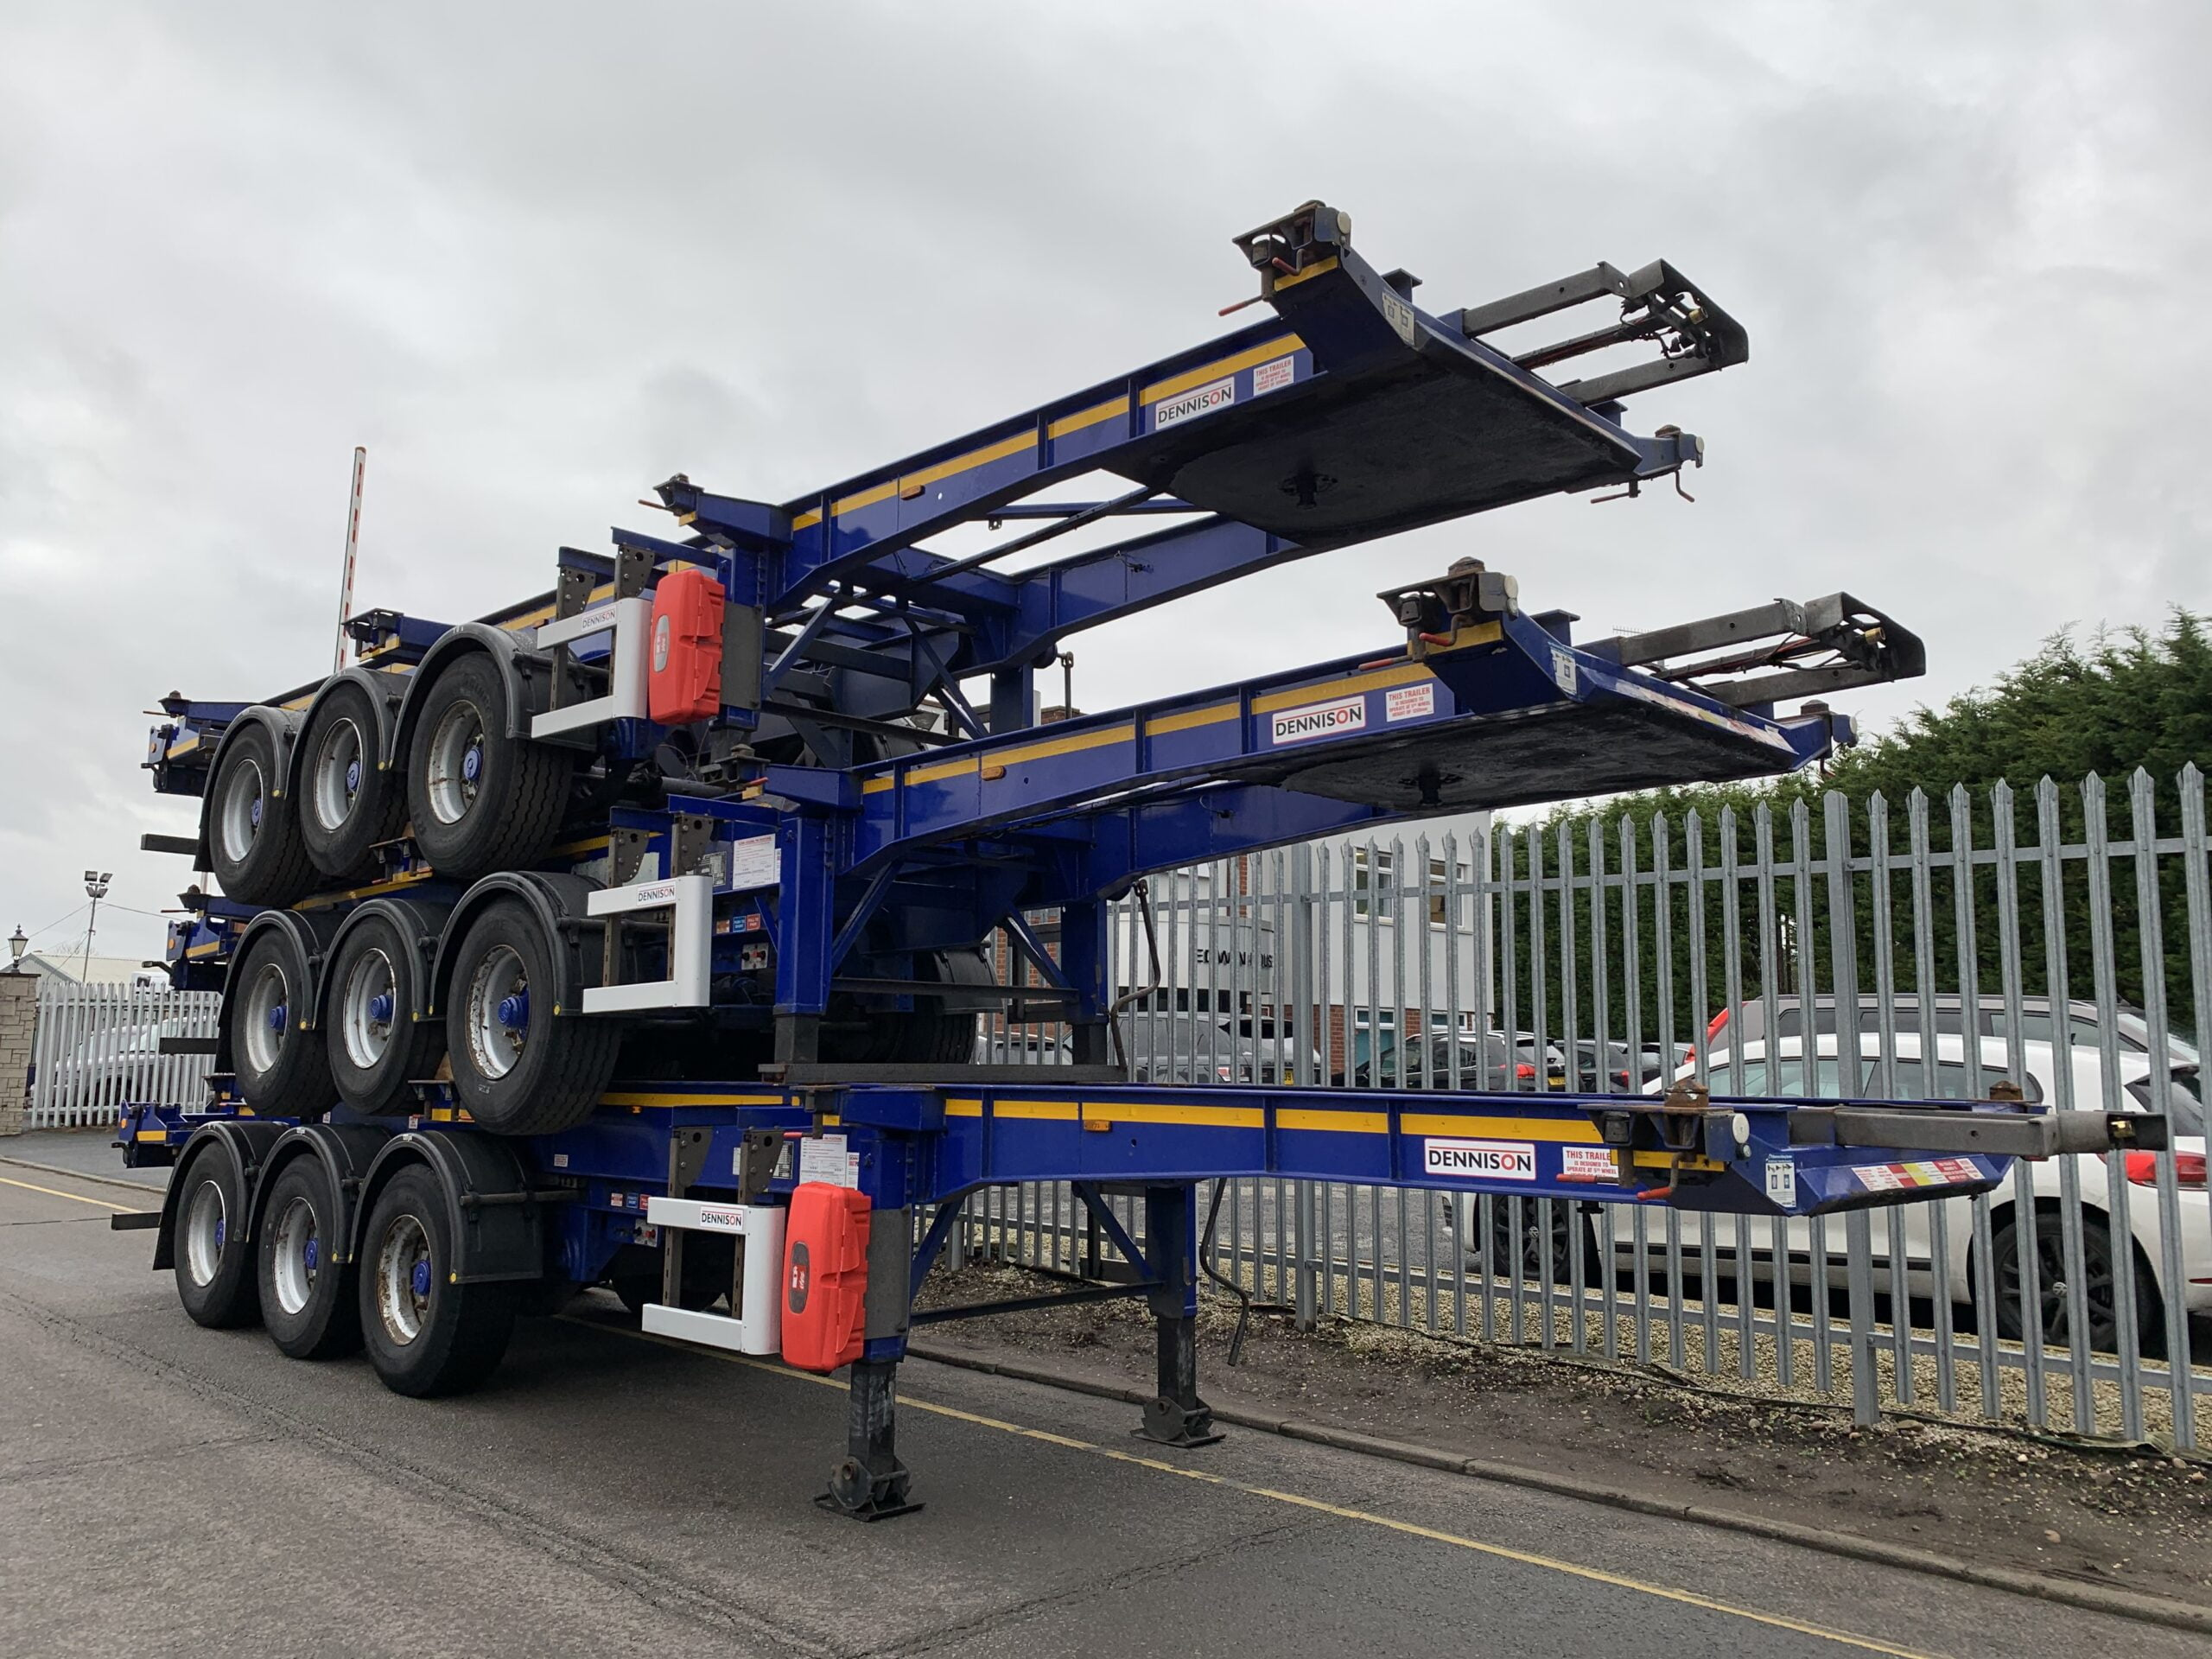 2016/2017 Dennison Sliding Skeletal Trailers. Mixture of SAF & BPW Axles, Drum Brakes, 14 x Twist Locks, Raise Lower Valve Facility, Varied MOT Dates, Choice Available.